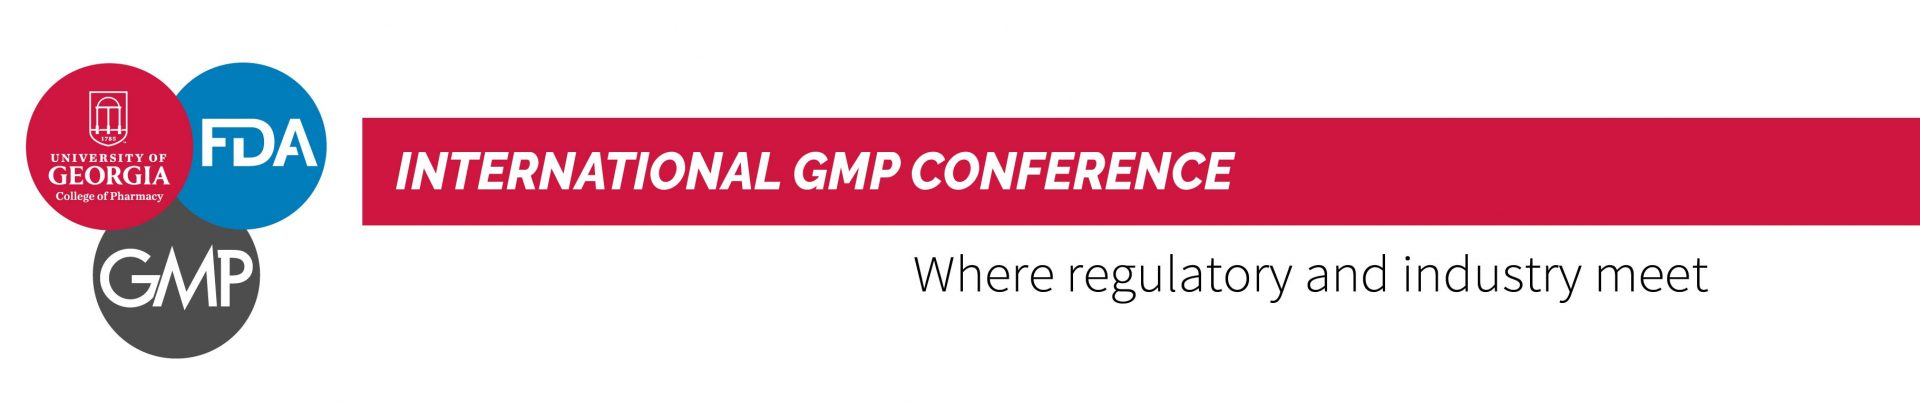 International GMP Conference